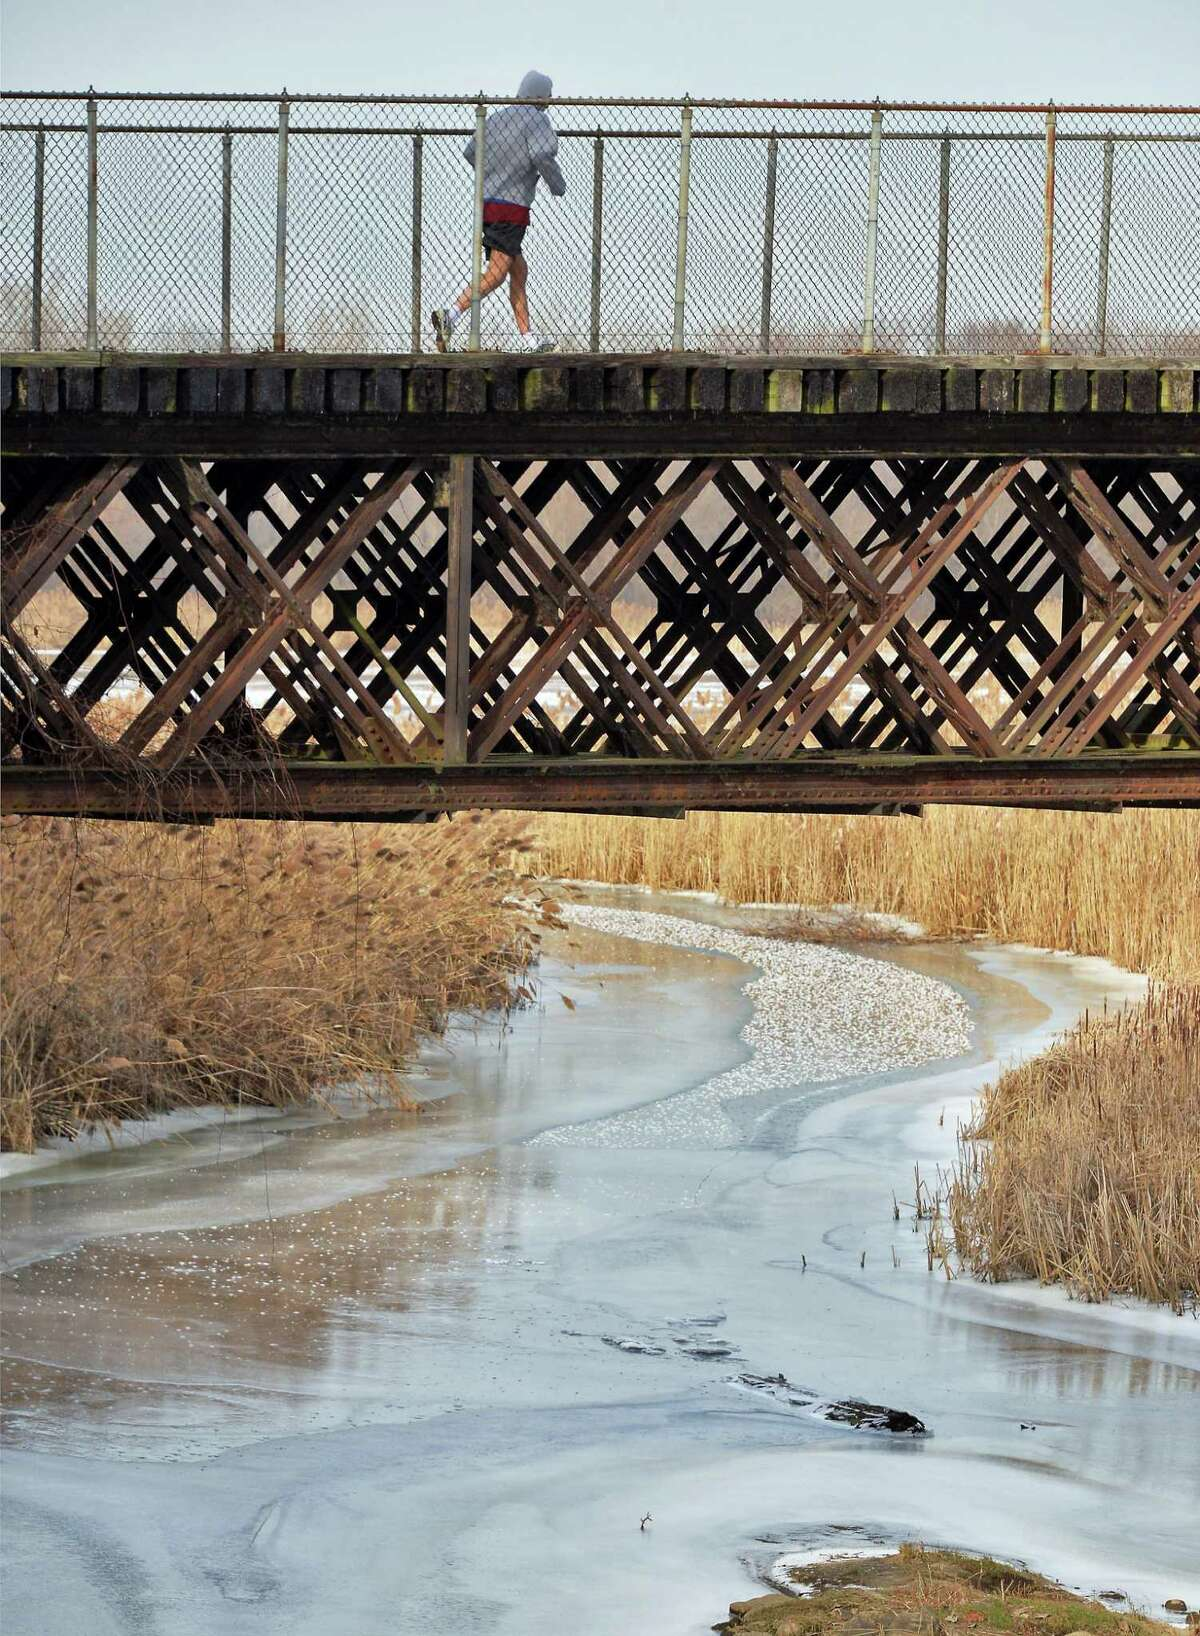 A lone runner crosses a bridge over a frozen stream along the bike path Friday Jan. 8, 2016 in Colonie, NY. (John Carl D'Annibale / Times Union)